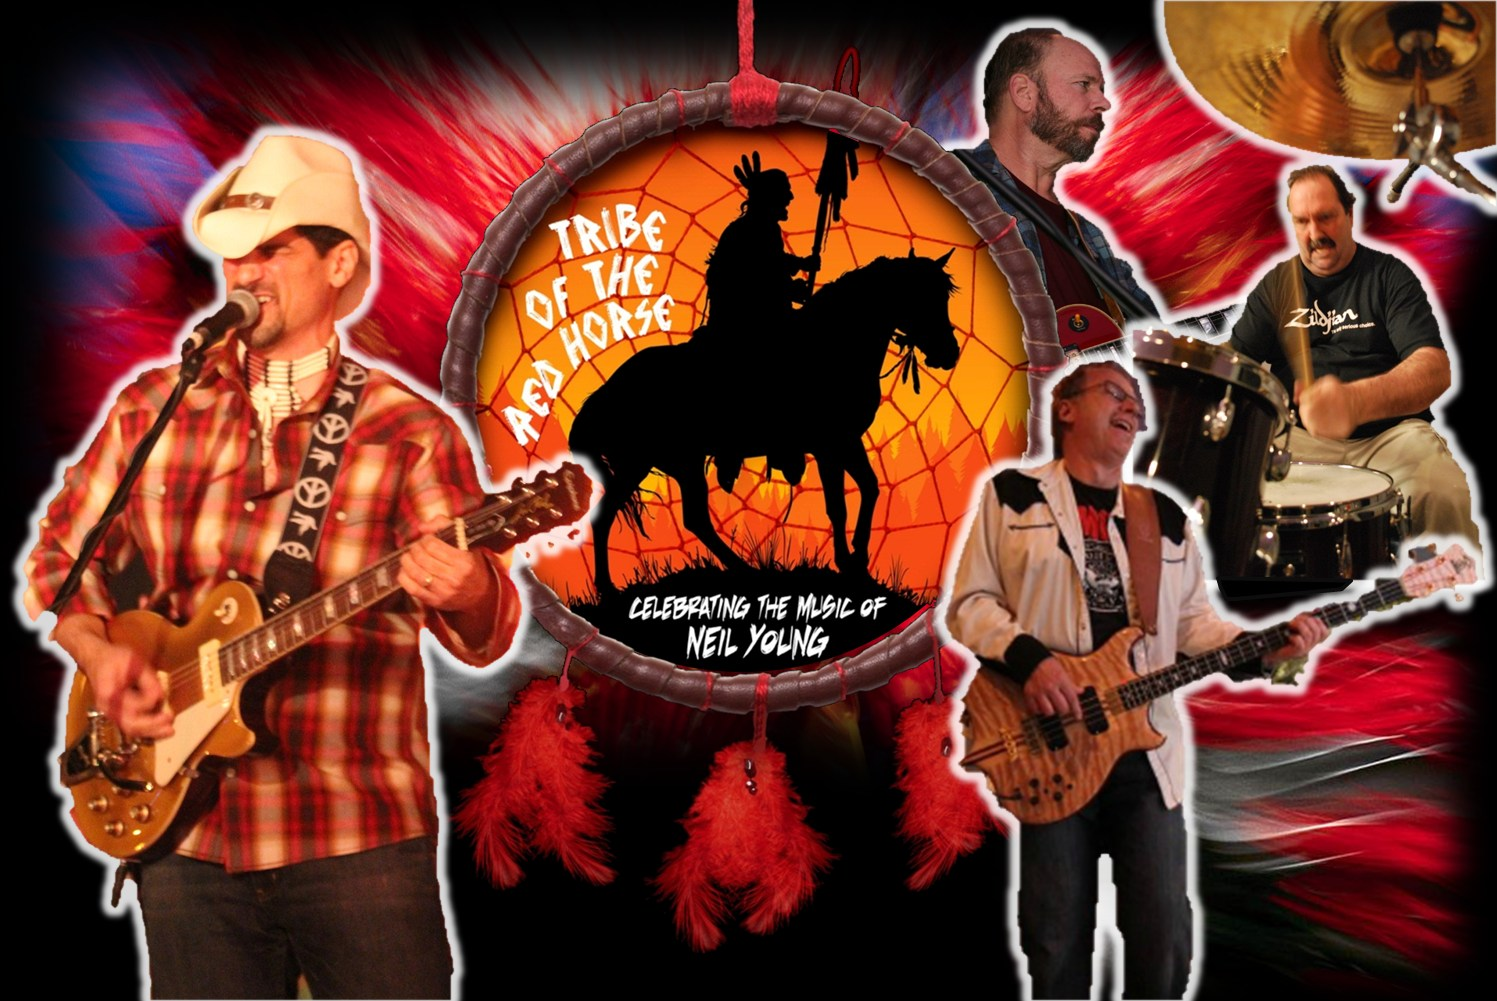 Tribe Of The Red Horse Celebrating The Music Of Neil Young